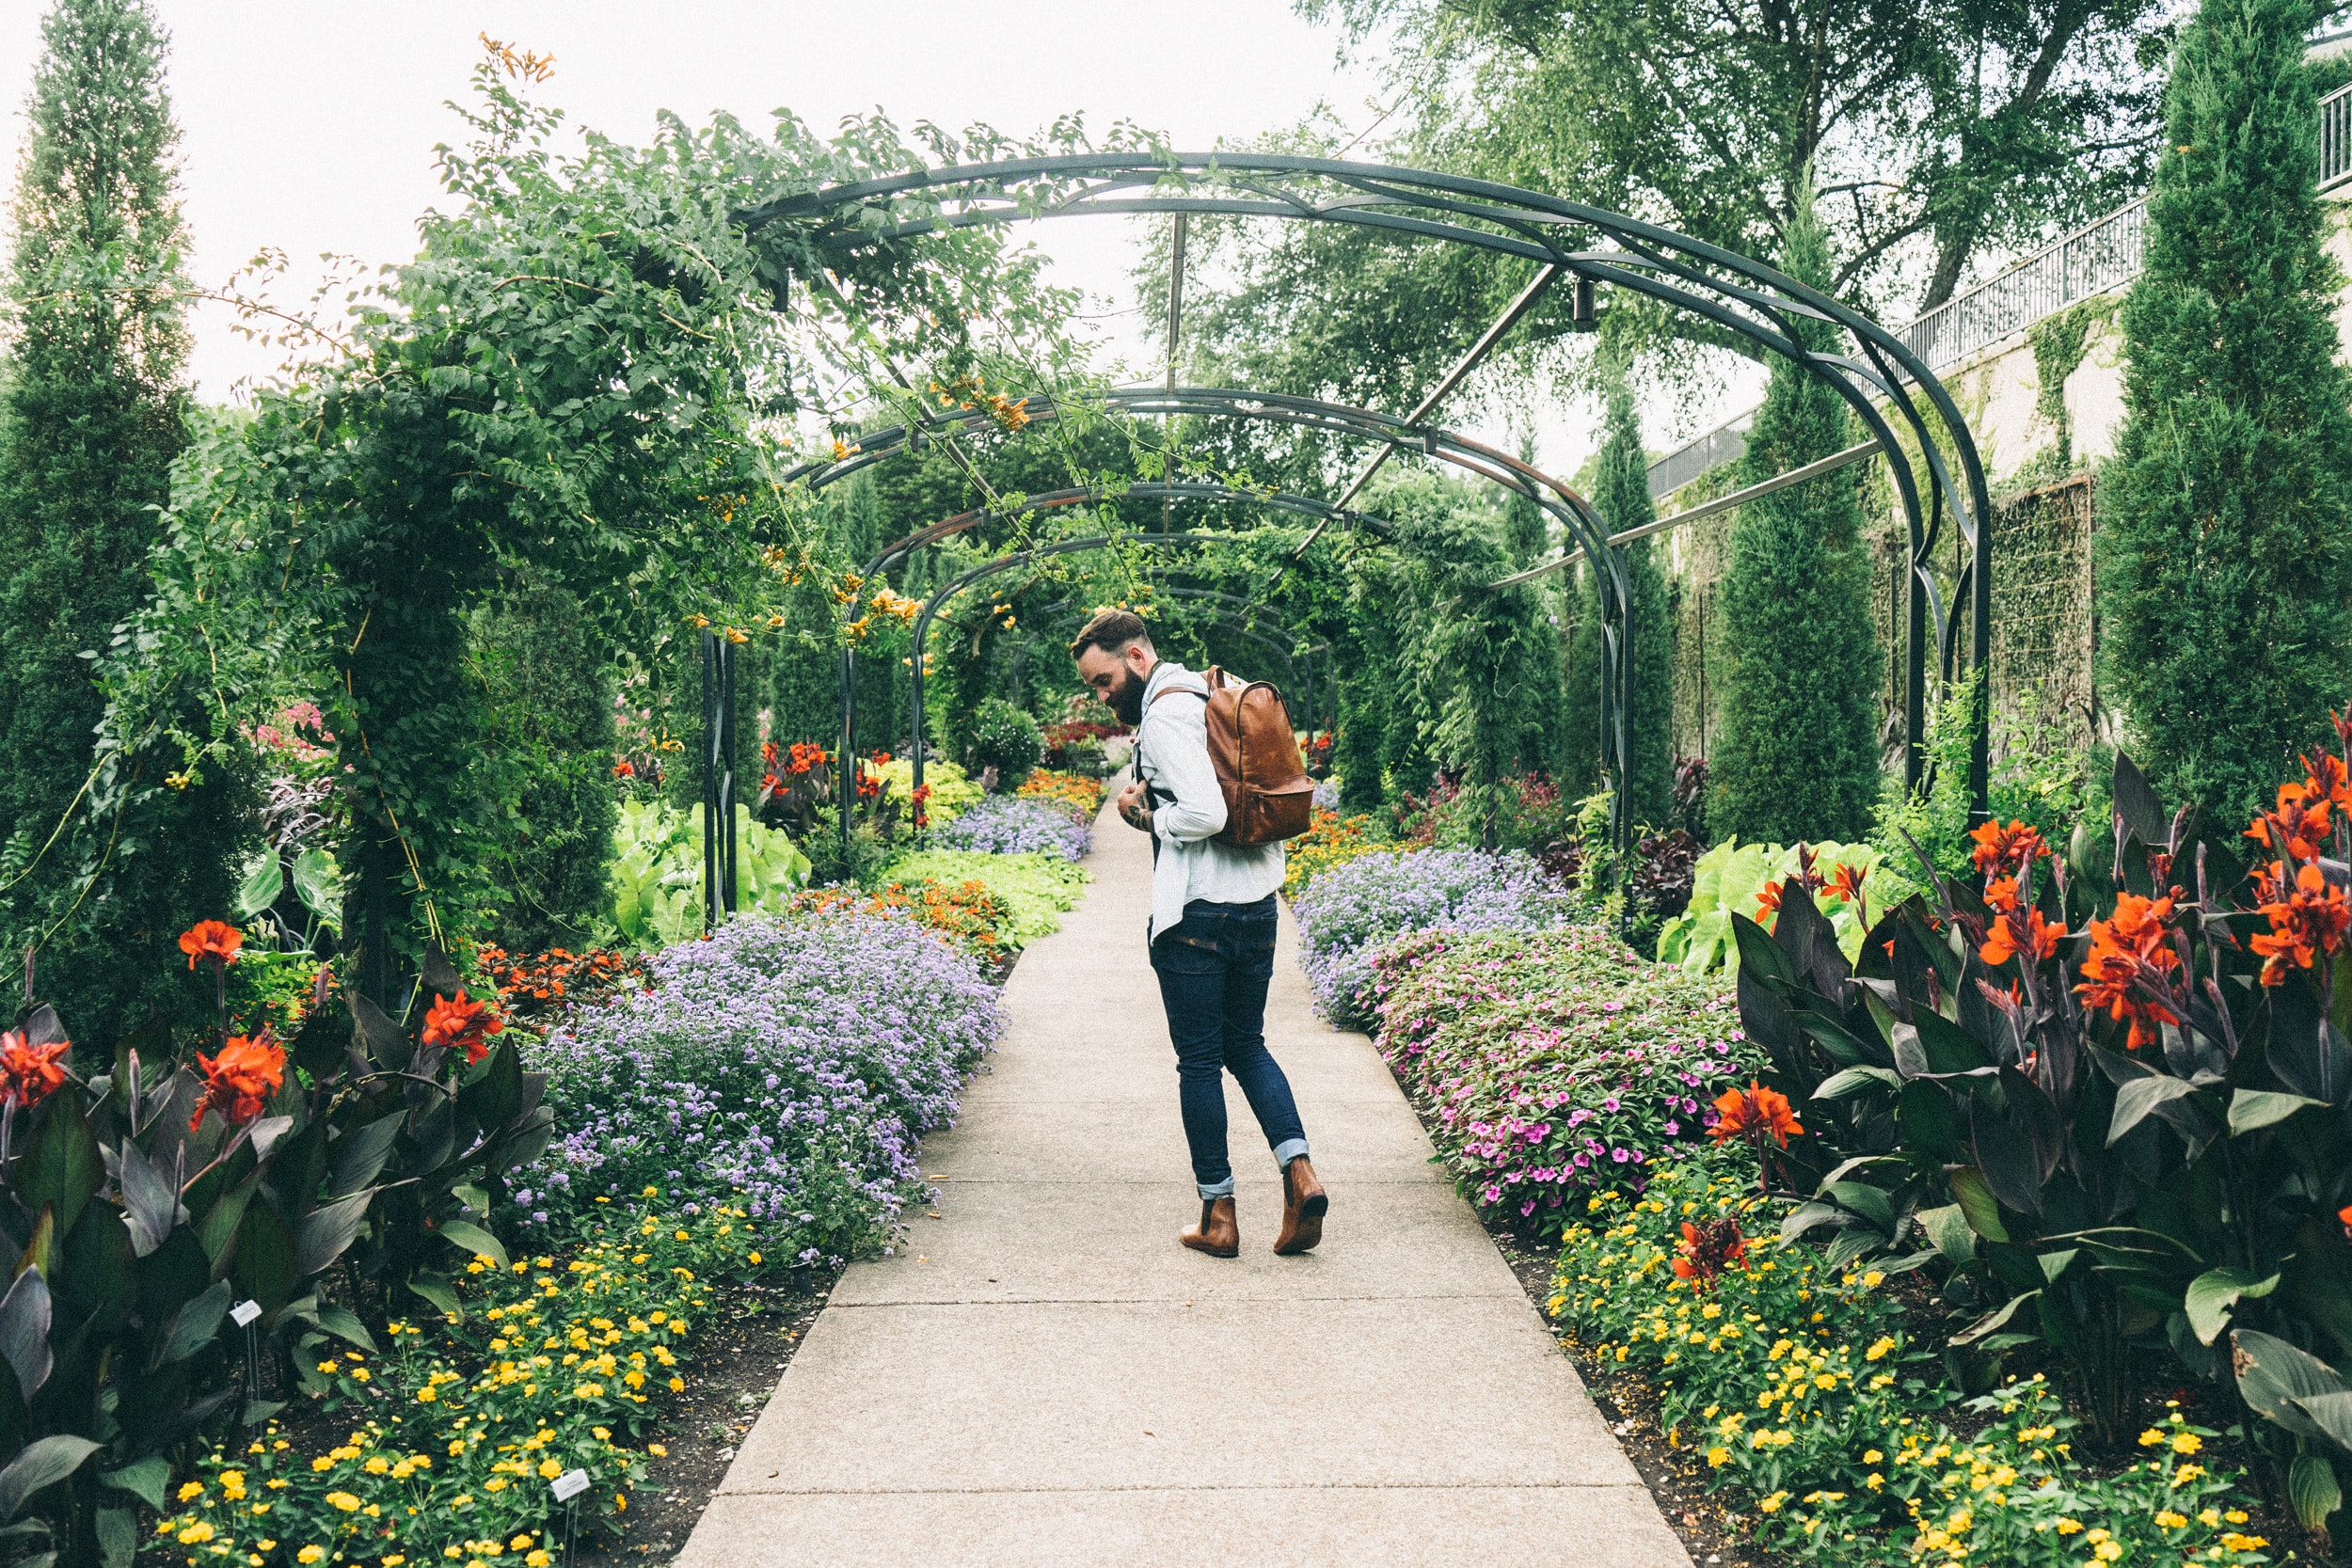 man carrying backpack walking on garden